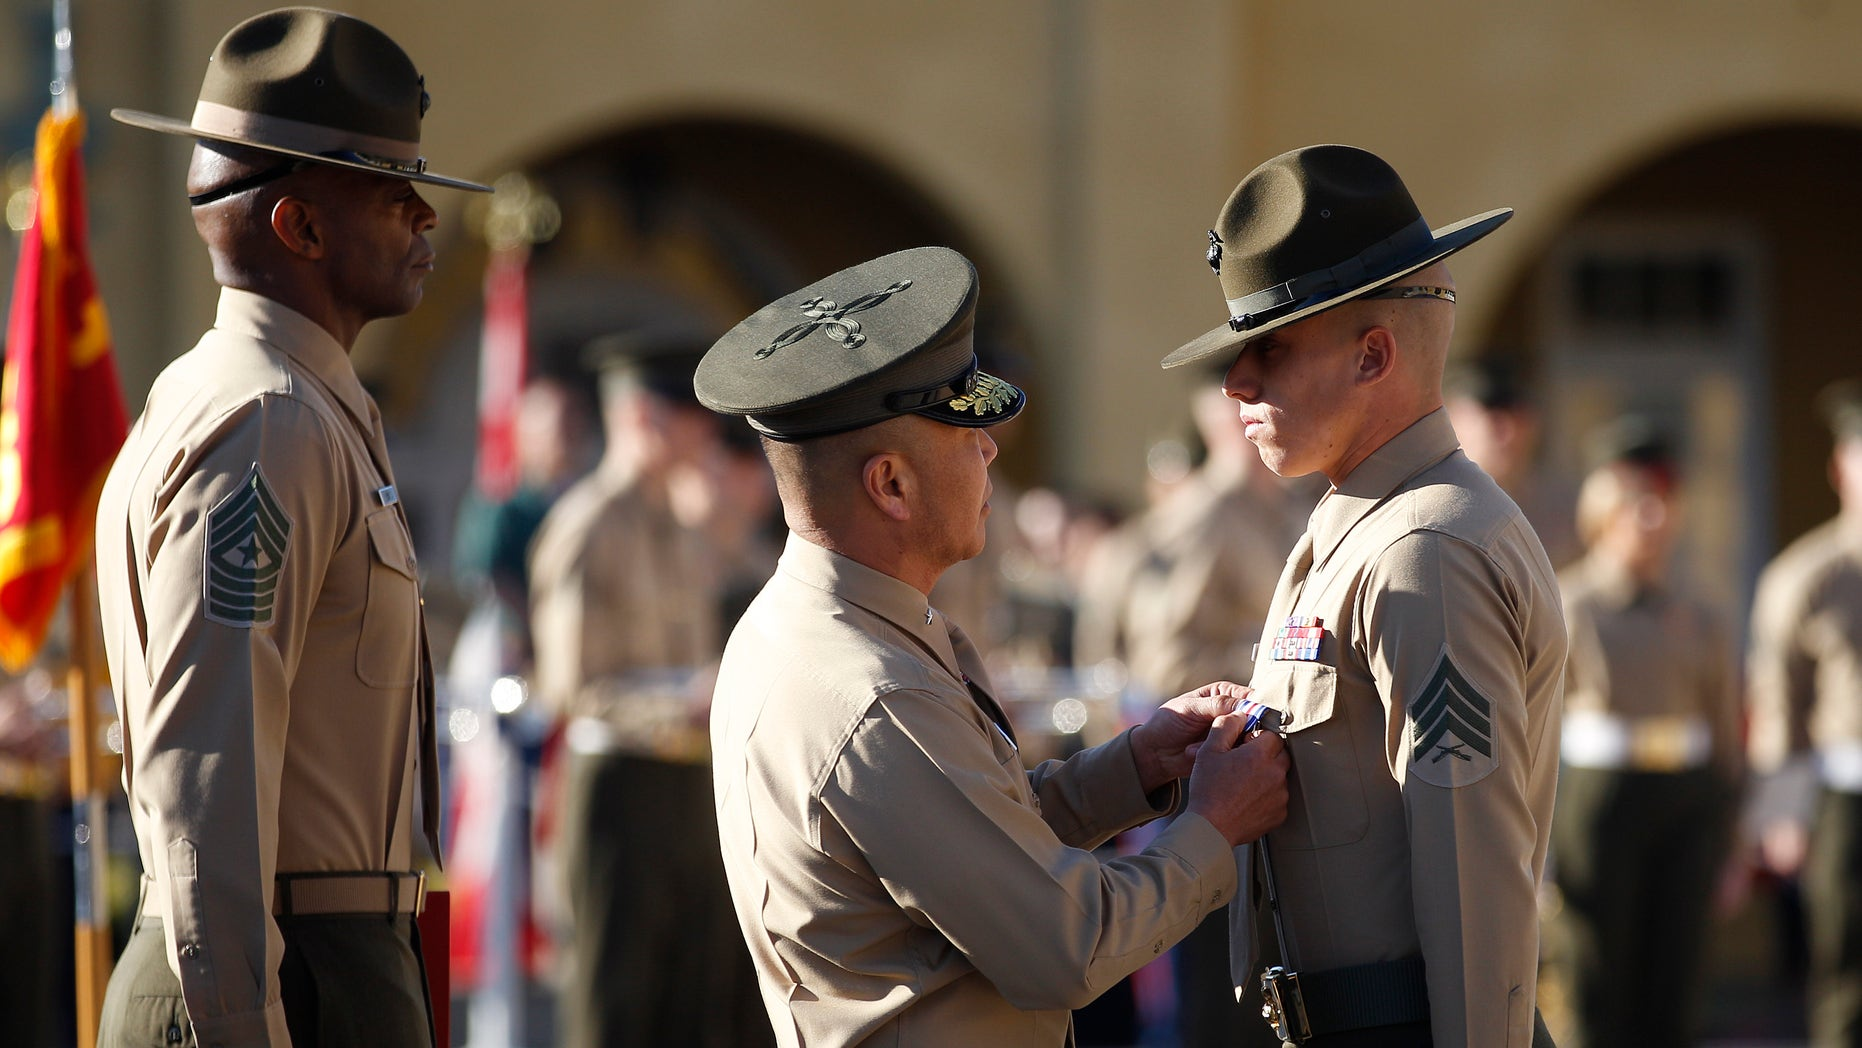 """Feb. 10, 2012: United States Marine Sgt. Philip A. McCulloch Jr., right, receives the Silver Star medal from Brigadier General Daniel D. Yoo for """"conspicuous gallantry and intrepidity in action"""" while serving in Afghanistan during a ceremony at the Marine Corp Recruit Depot."""